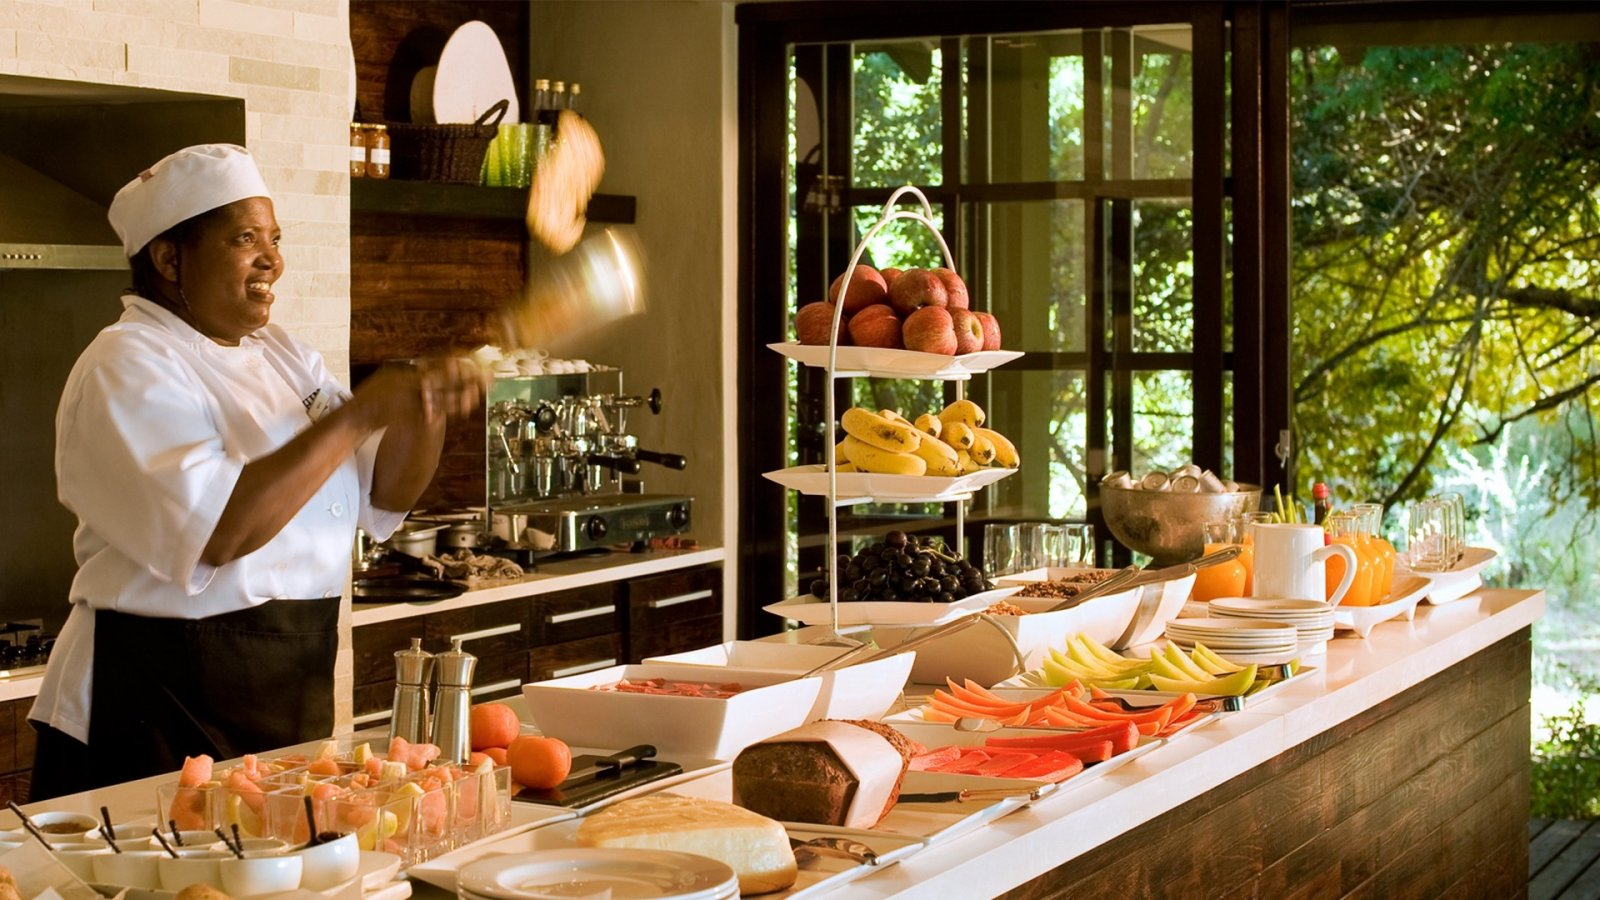 breakfast-is-serverd-at-andbeyond-phinda-forest-lodge-on-a-luxury-safari-in-south-africa.jpg